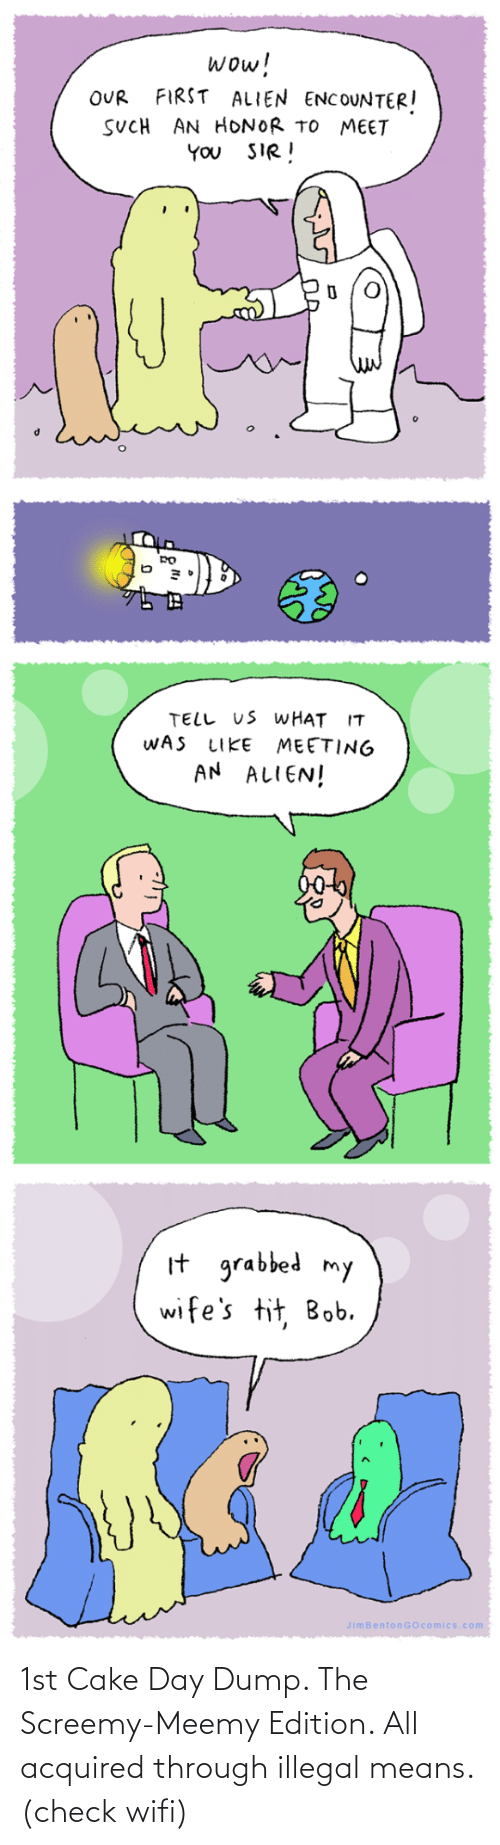 honor: wow!  FIRST ALIEN ENCOUNTER!  OUR  SUCH AN HONOR TO MEET  YOU SIR!  TELL US WHAT IT  WAS  MEETING  AN ALIEN!  LIKE  It grabbed my  wife's tit, Bob.  JimBentonGOcomics.com 1st Cake Day Dump. The Screemy-Meemy Edition. All acquired through illegal means. (check wifi)